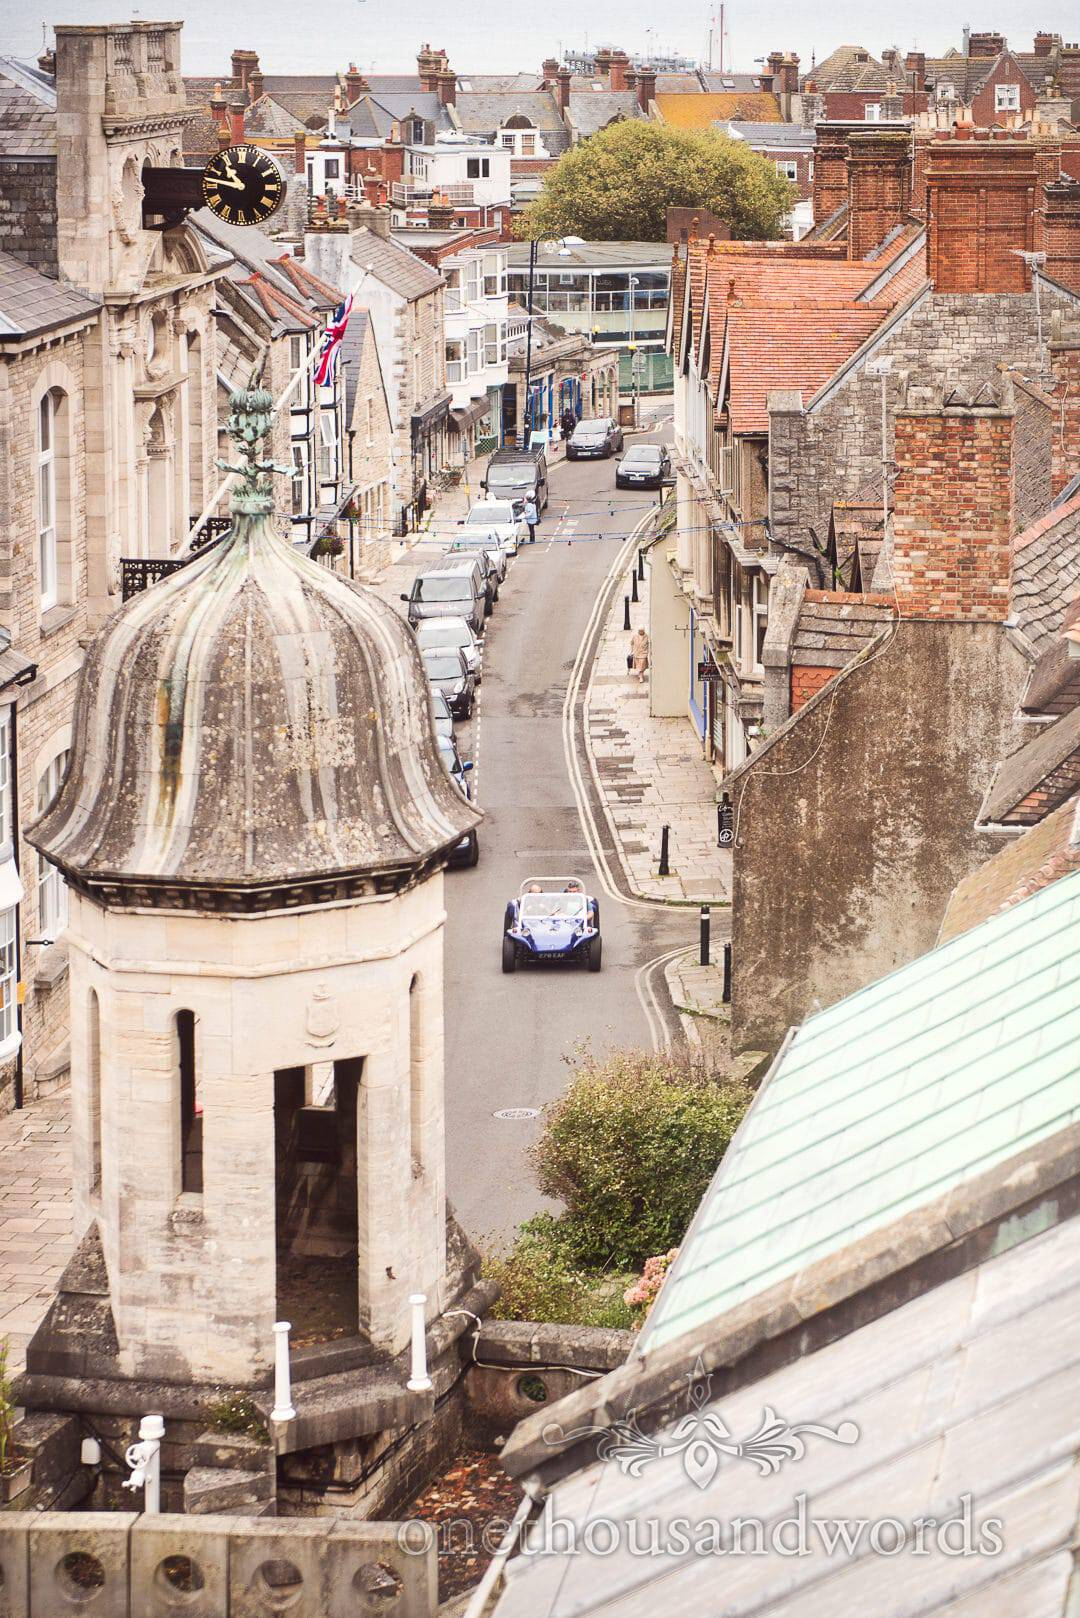 Elevated view of Swanage streets with groom driving VW beach buggy